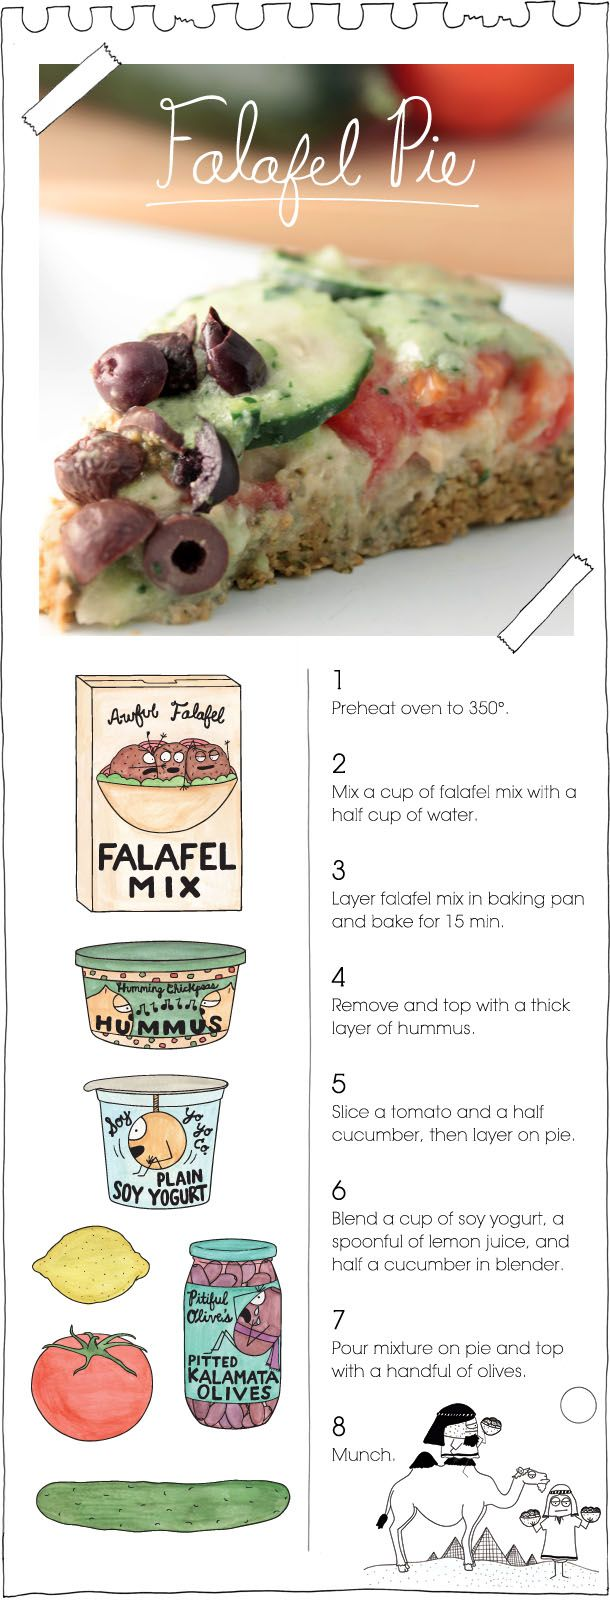 The road to Falafel Pie is short and paved with hummus. But how will we stick to just one slice?